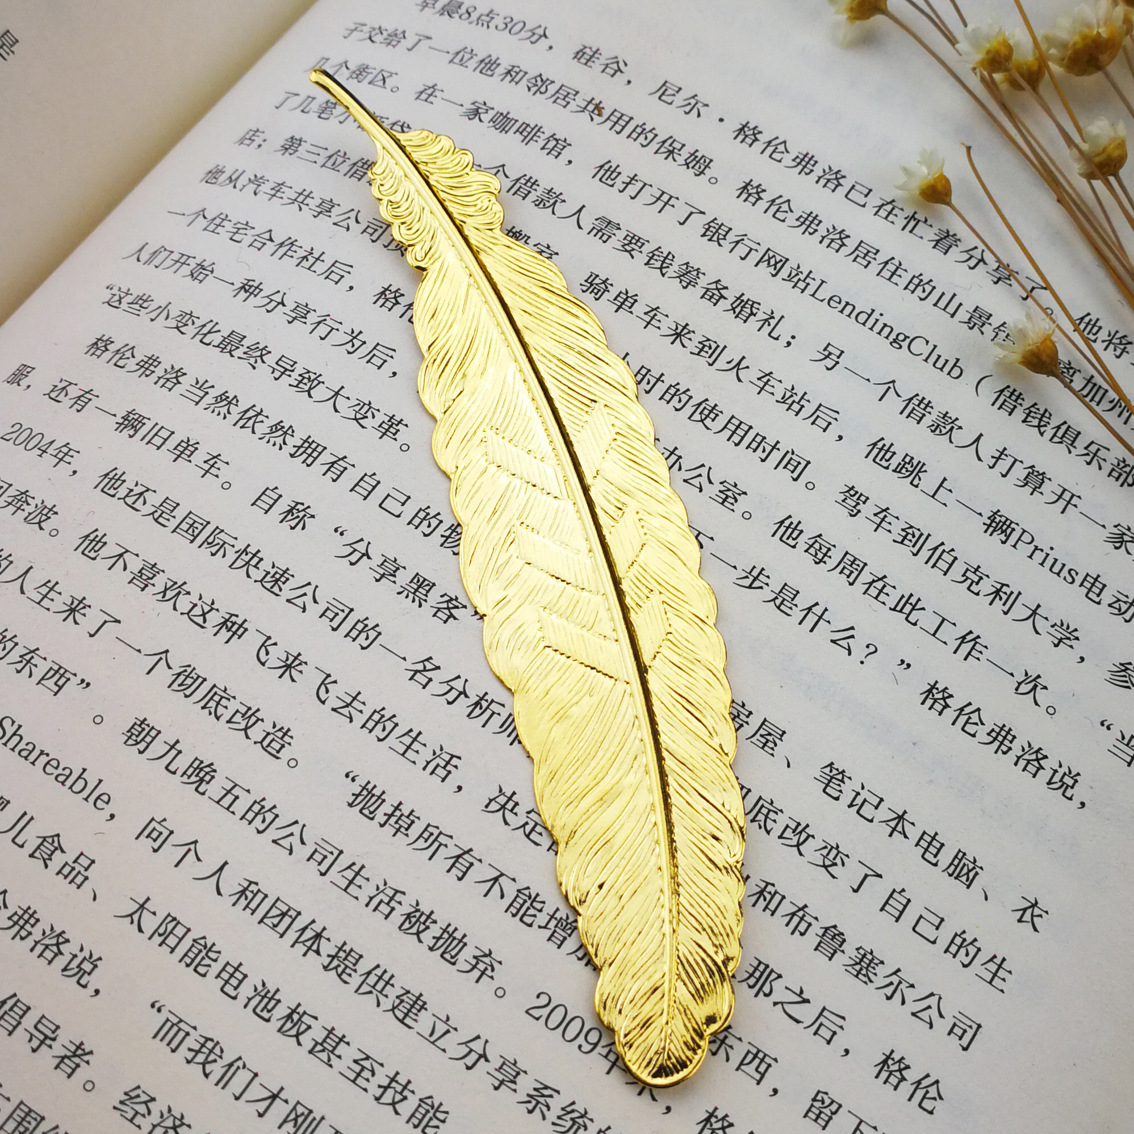 2Pcs/Lot Metal Feather Bookmark Document Book Mark Label DIY Gift Accessories Teacher Students Gifts